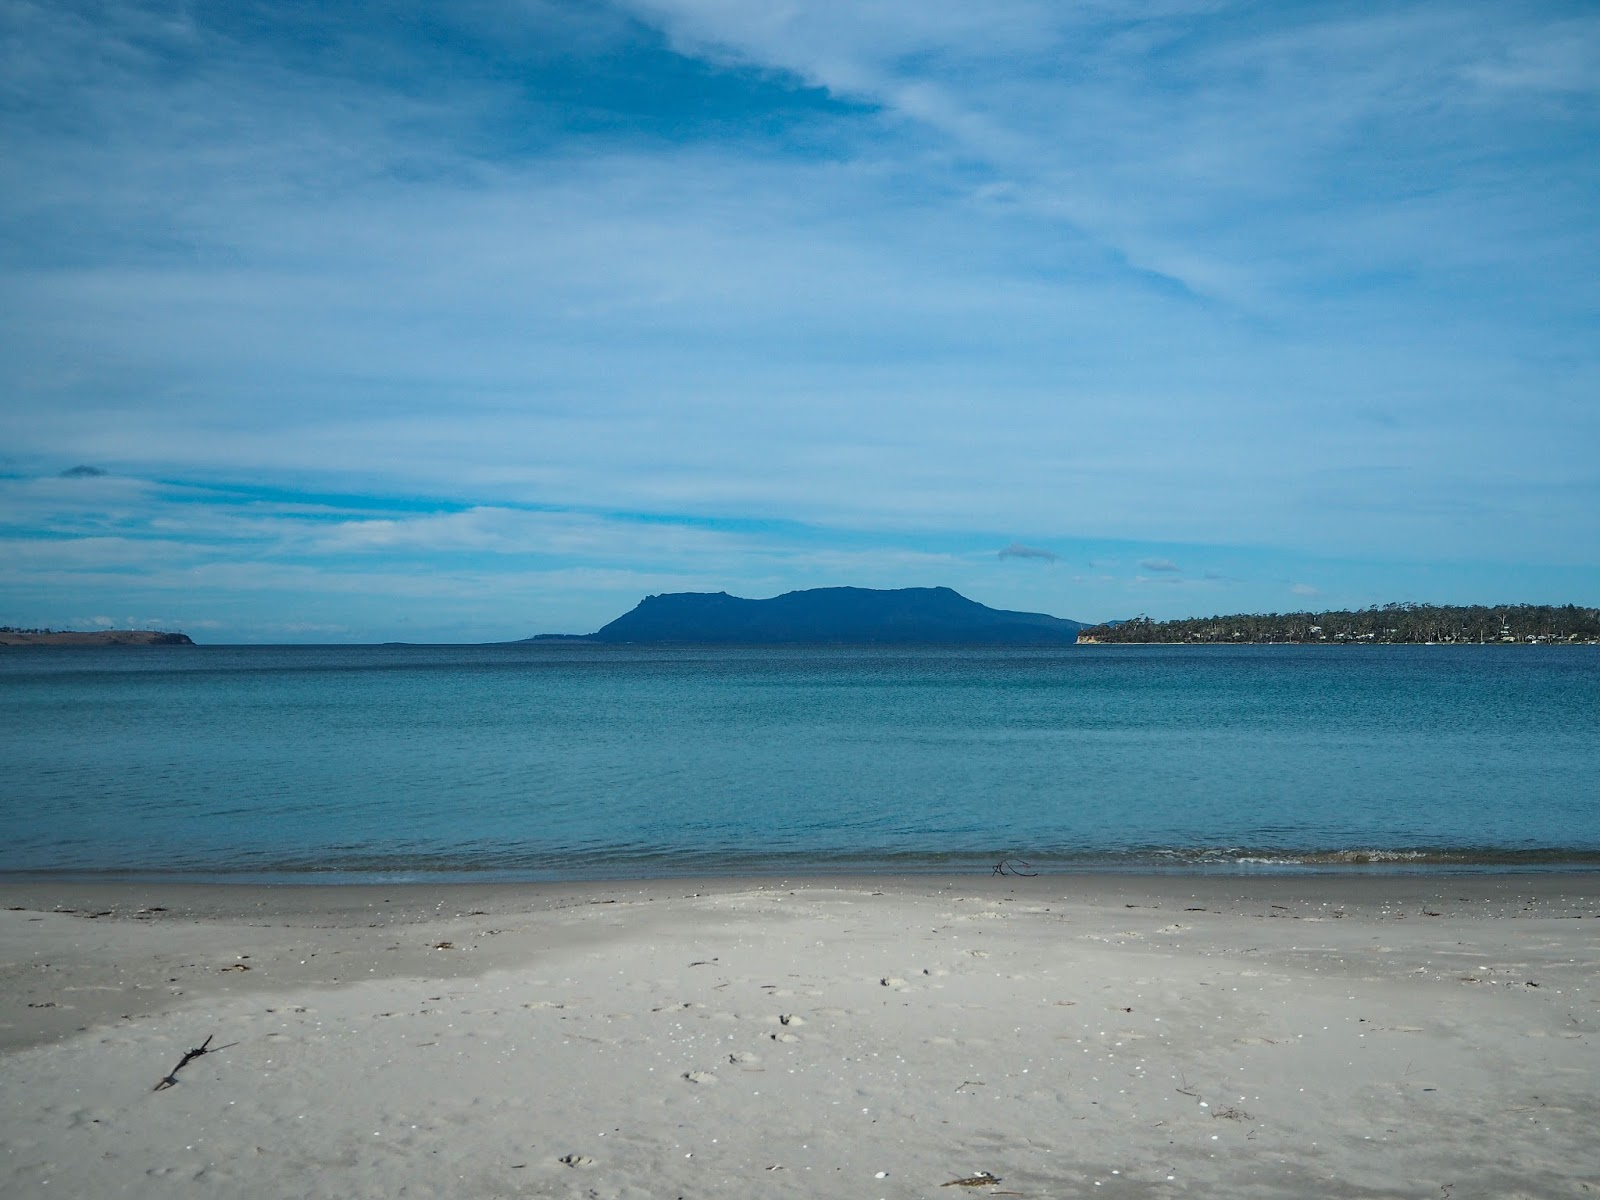 Maria Island from Orford, Tasmania